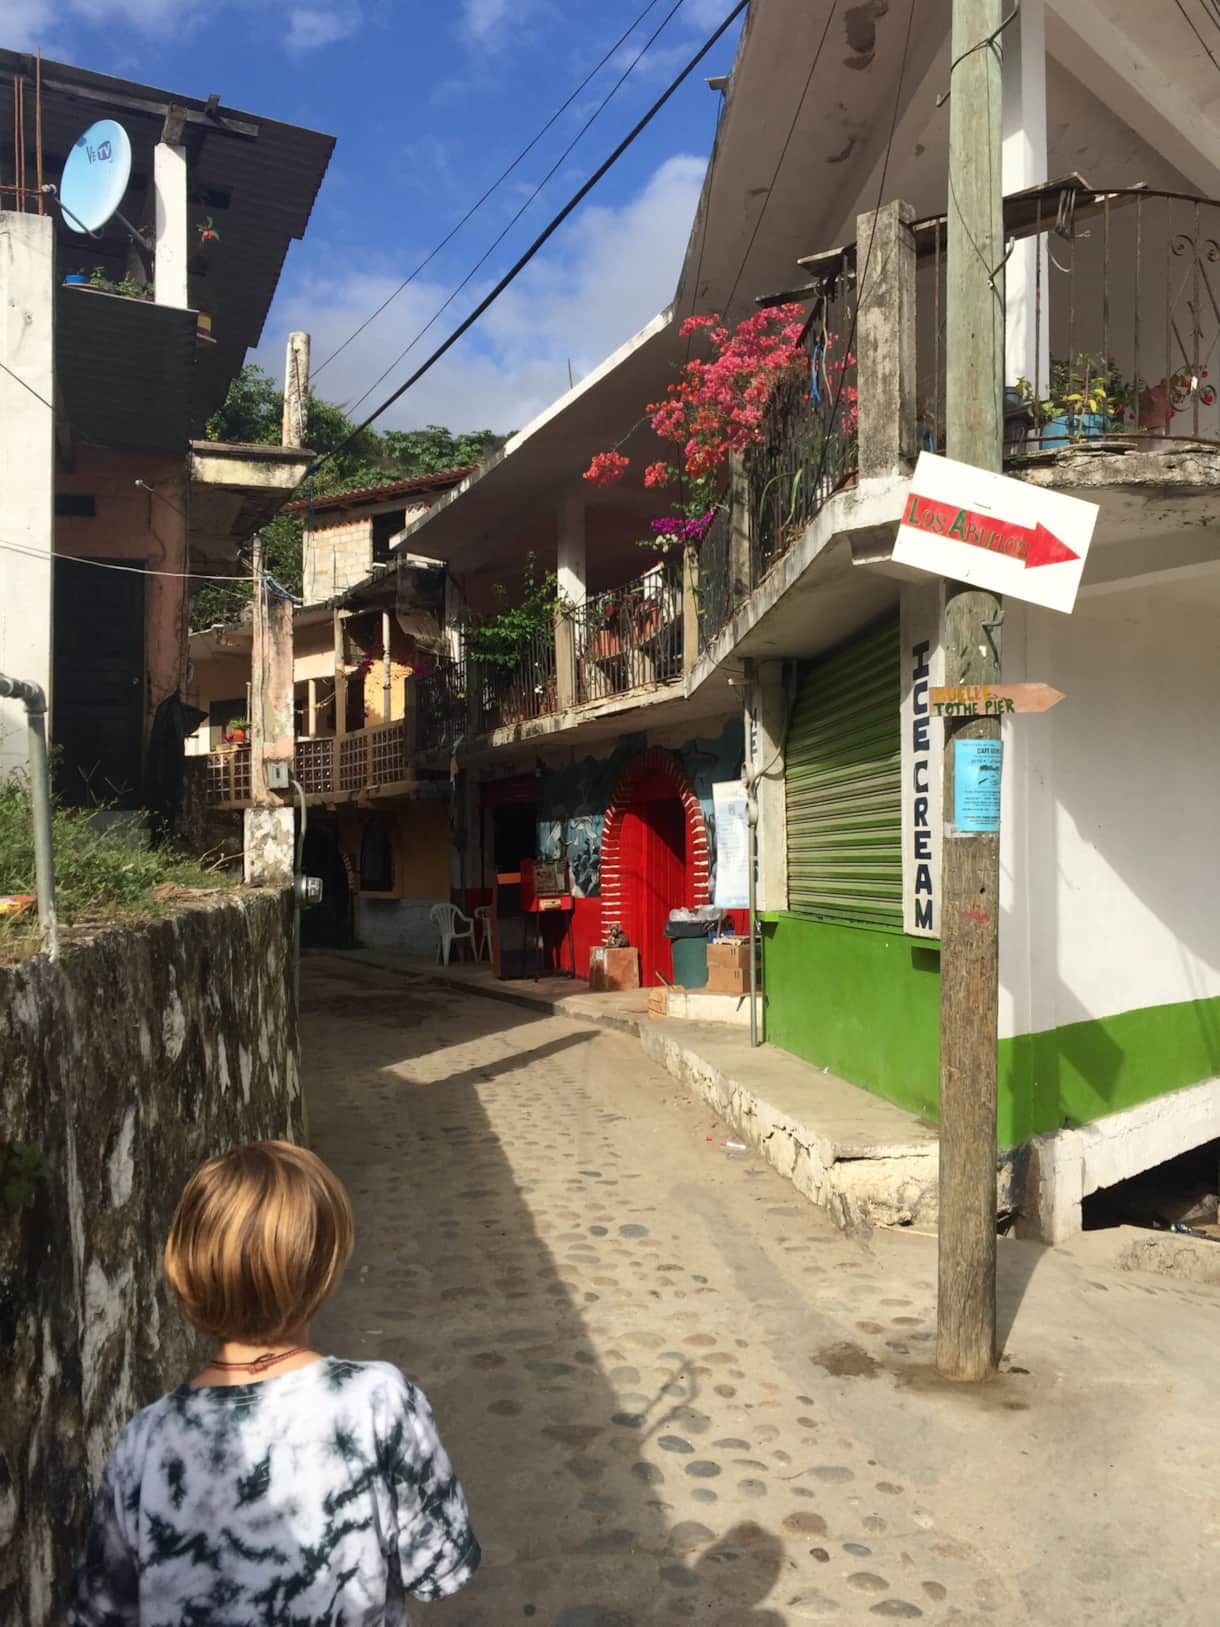 Hike through the village to meet locals, eat great food, enjoy an espresso. No cars here!